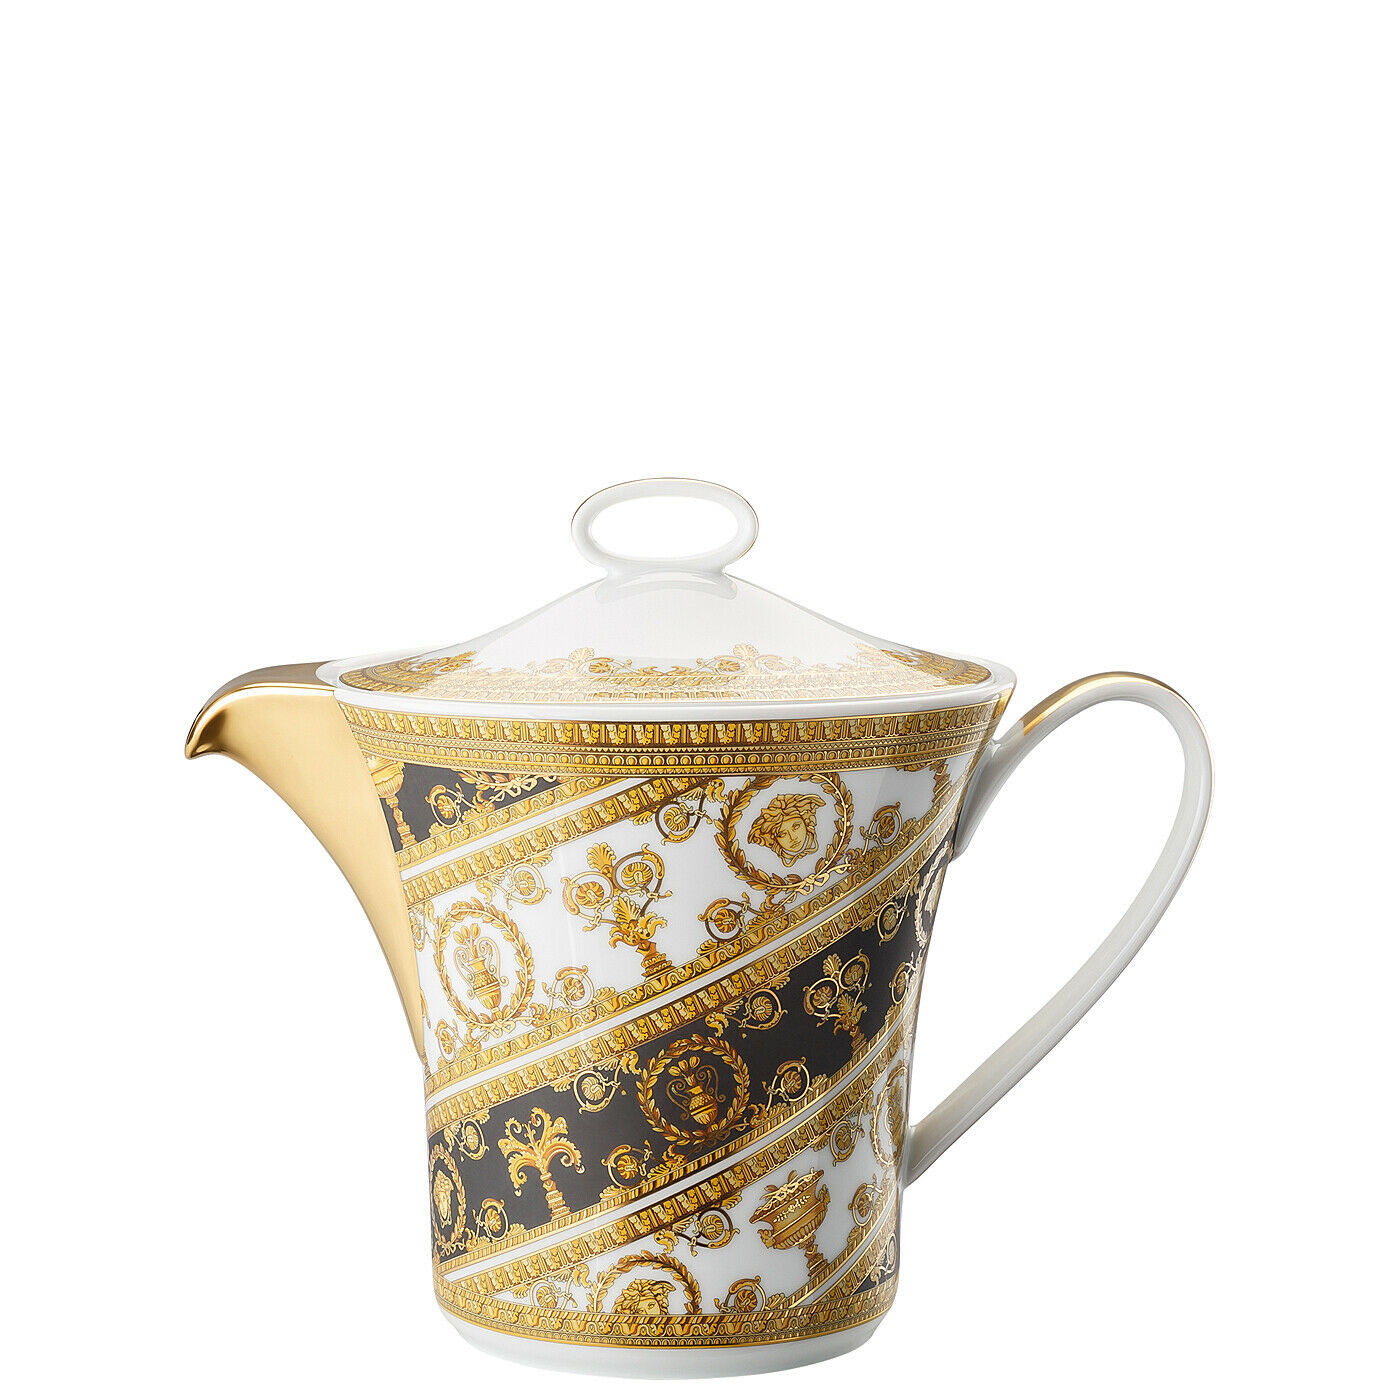 Versace Home I Love BaroqueTea Pot 3 Porcelain Made in Italy - $650.35